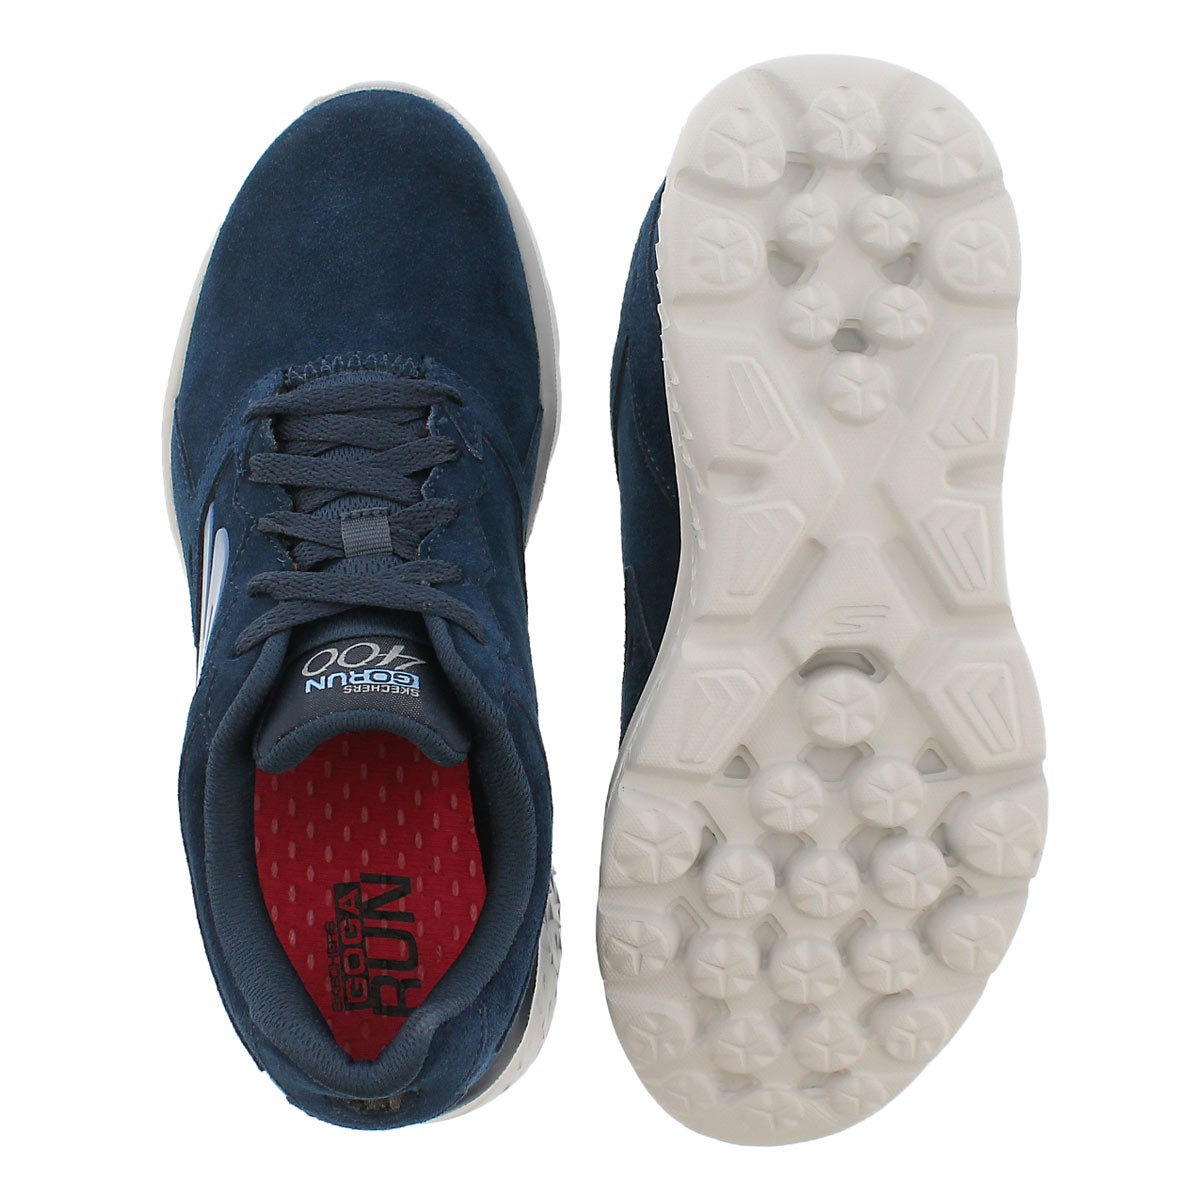 Lds GOrun 400 navy lace up running shoe